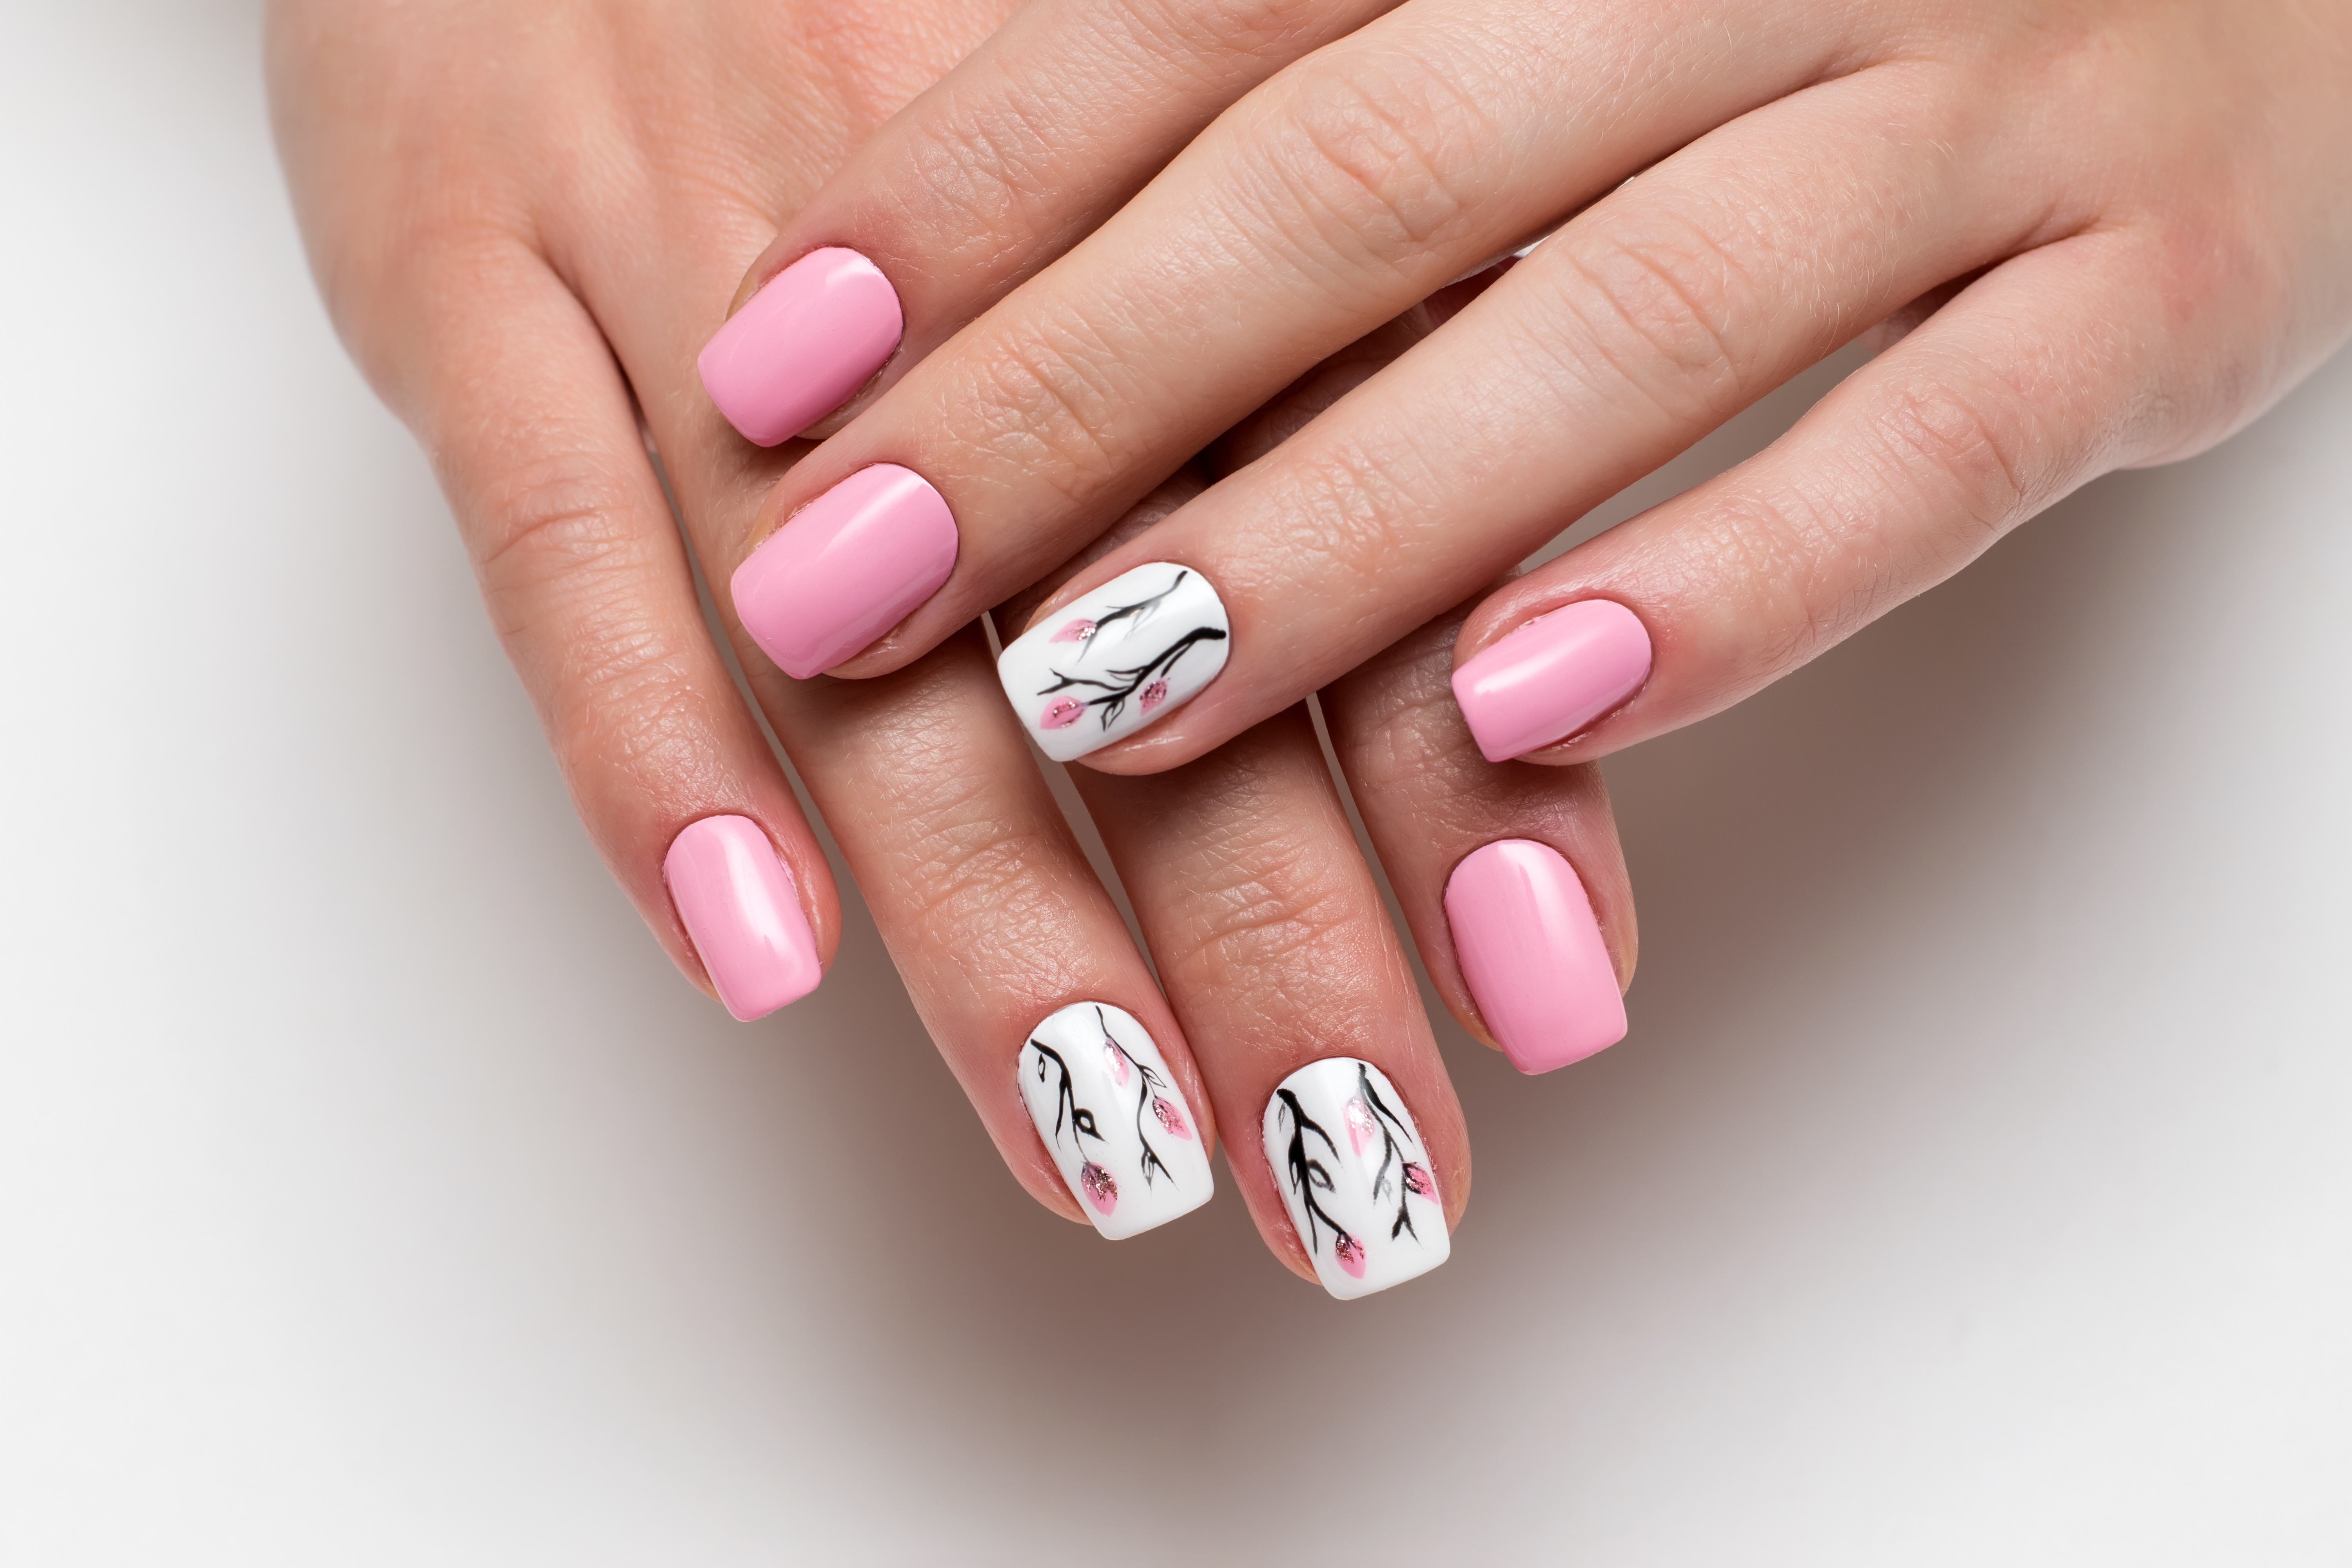 delicate pink manicure with spring flowers on short square nails on a white background